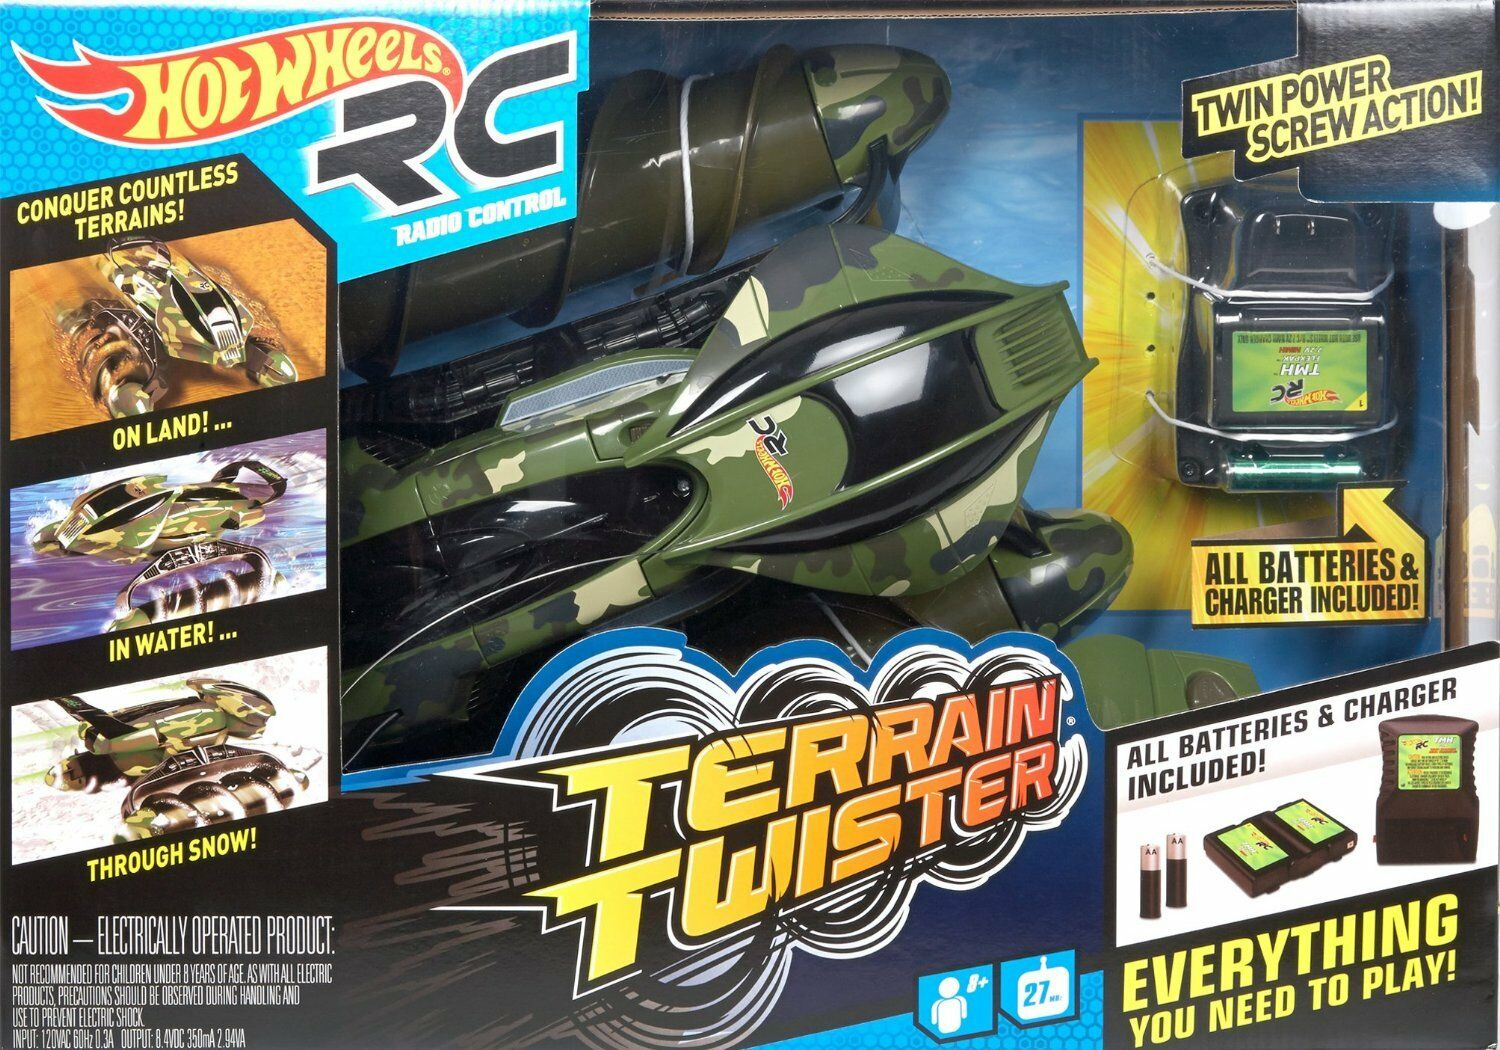 Hot Wheels RC Terrainiac Terrain Twister 27 MHZ Camo Army verde Vehicle DNG35 NU